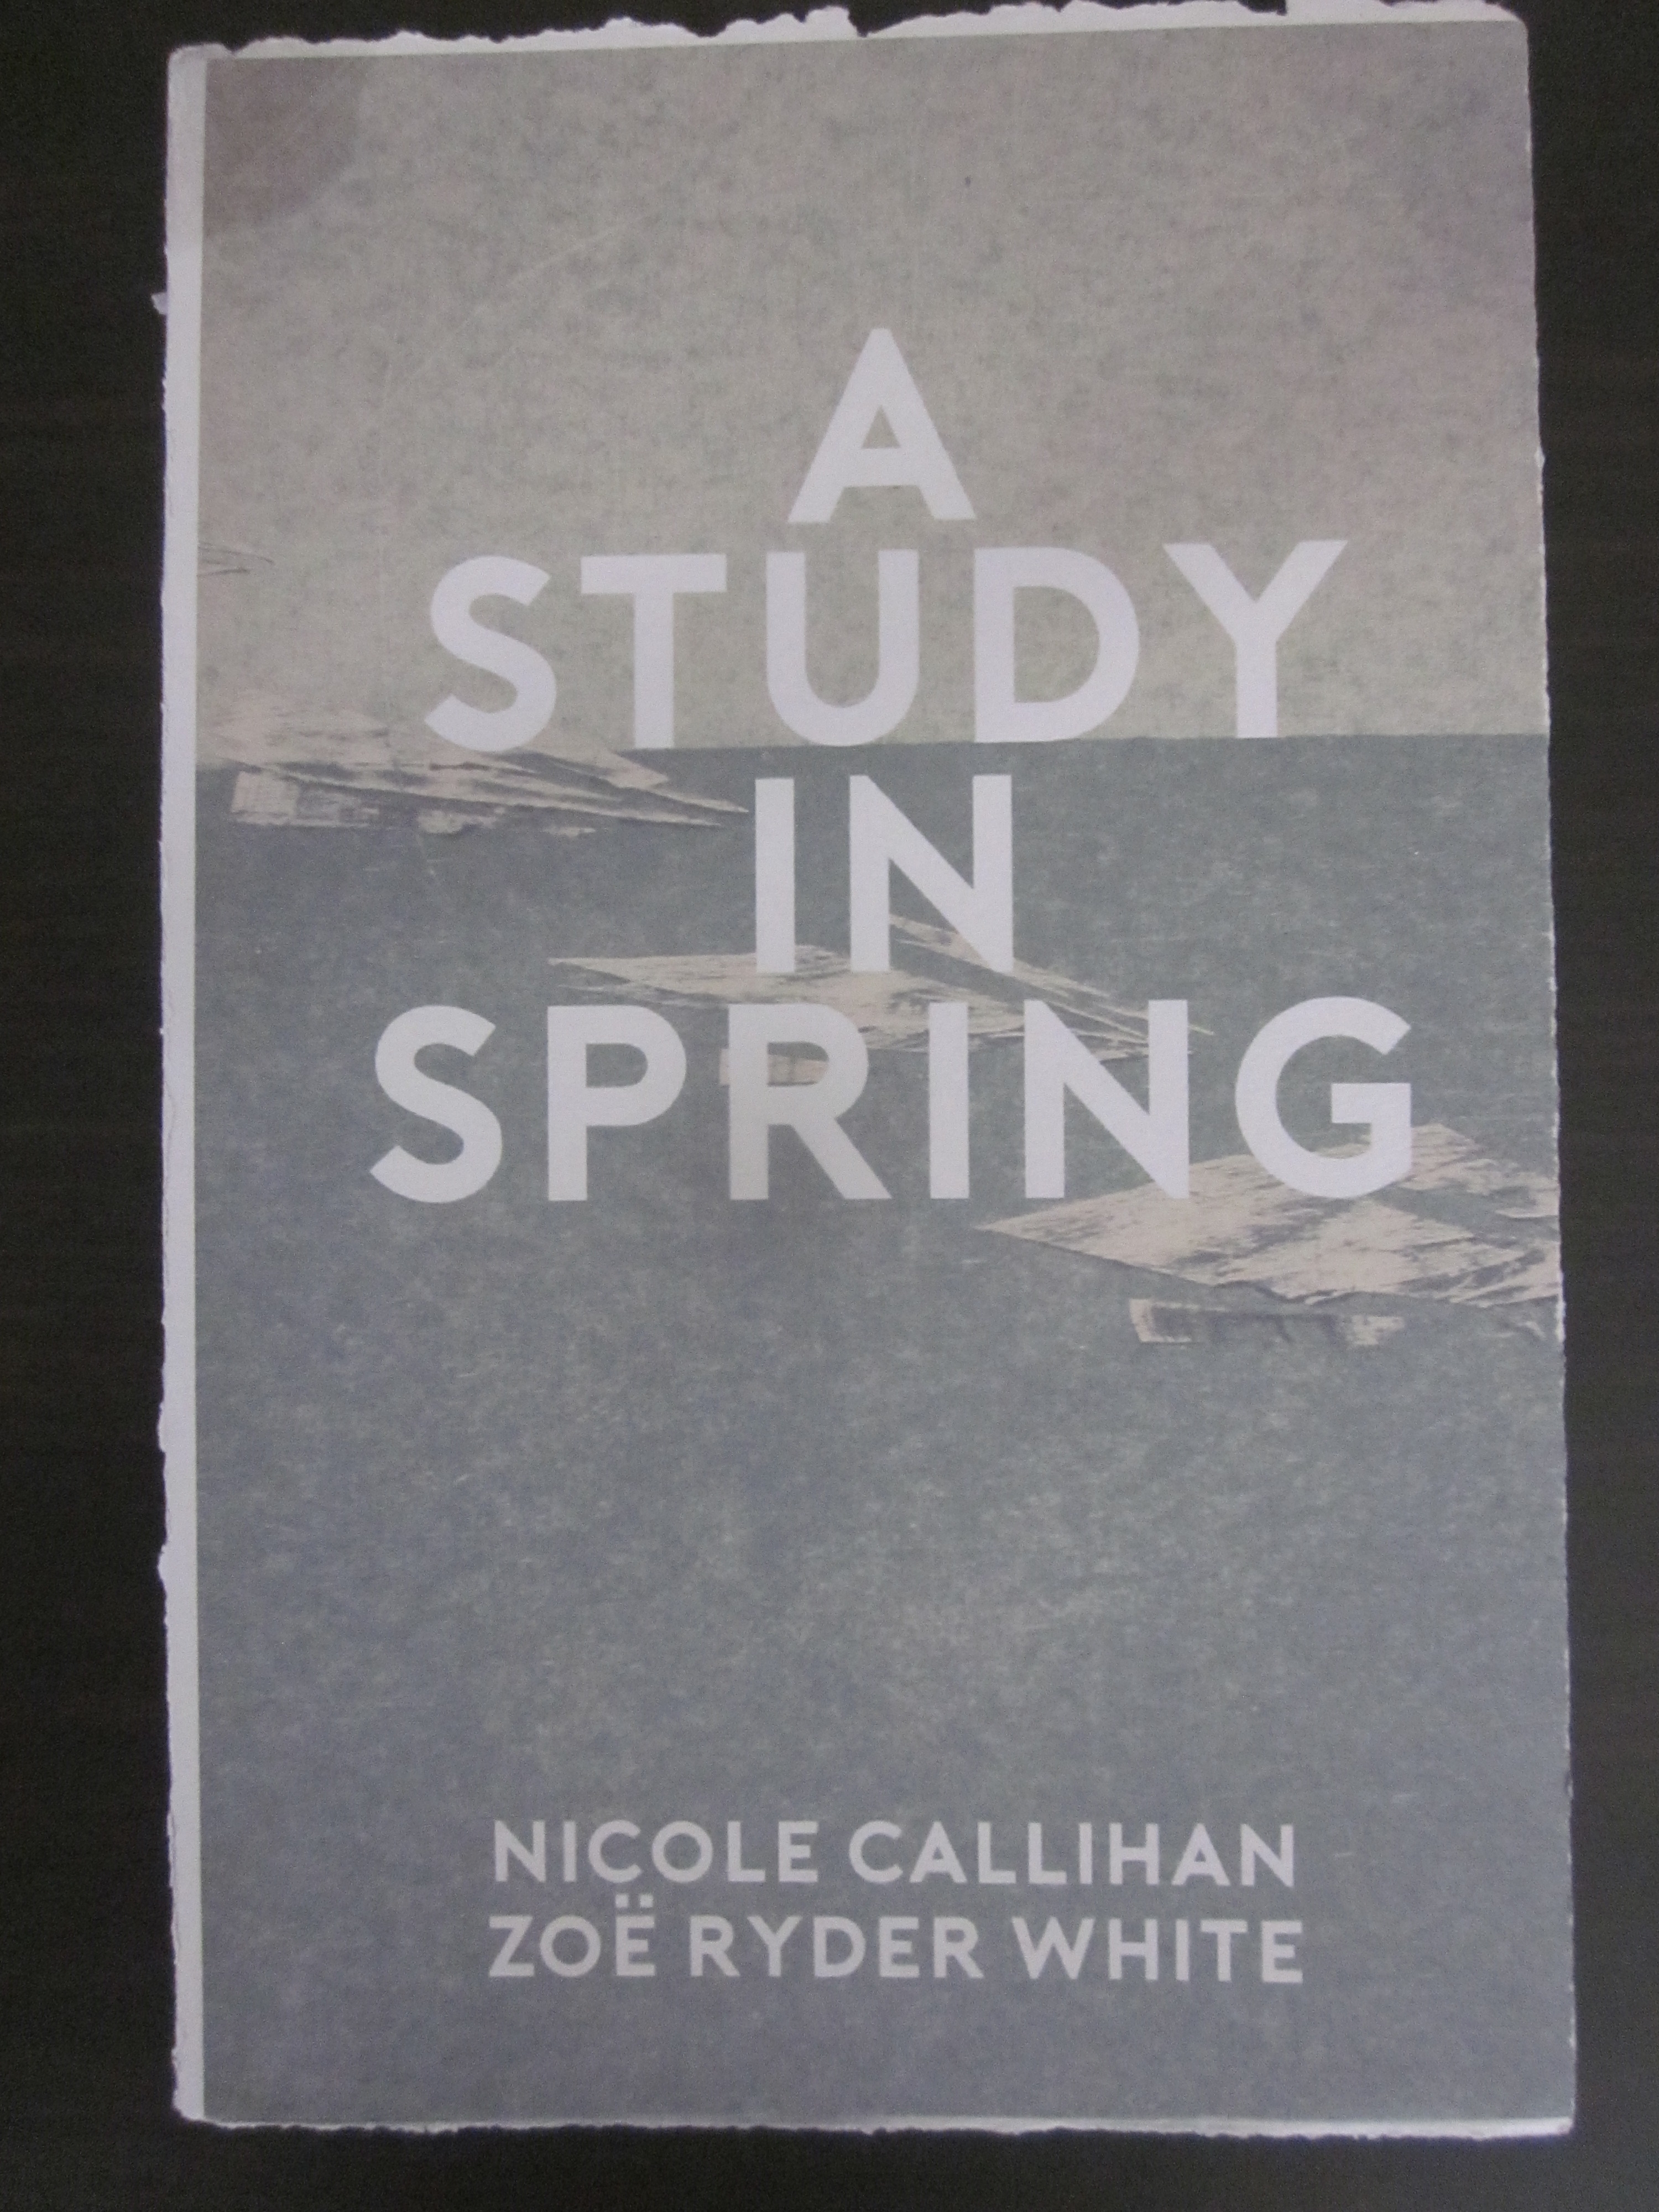 A Study in Spring by Nicole Callihan & Zoe Ryder White